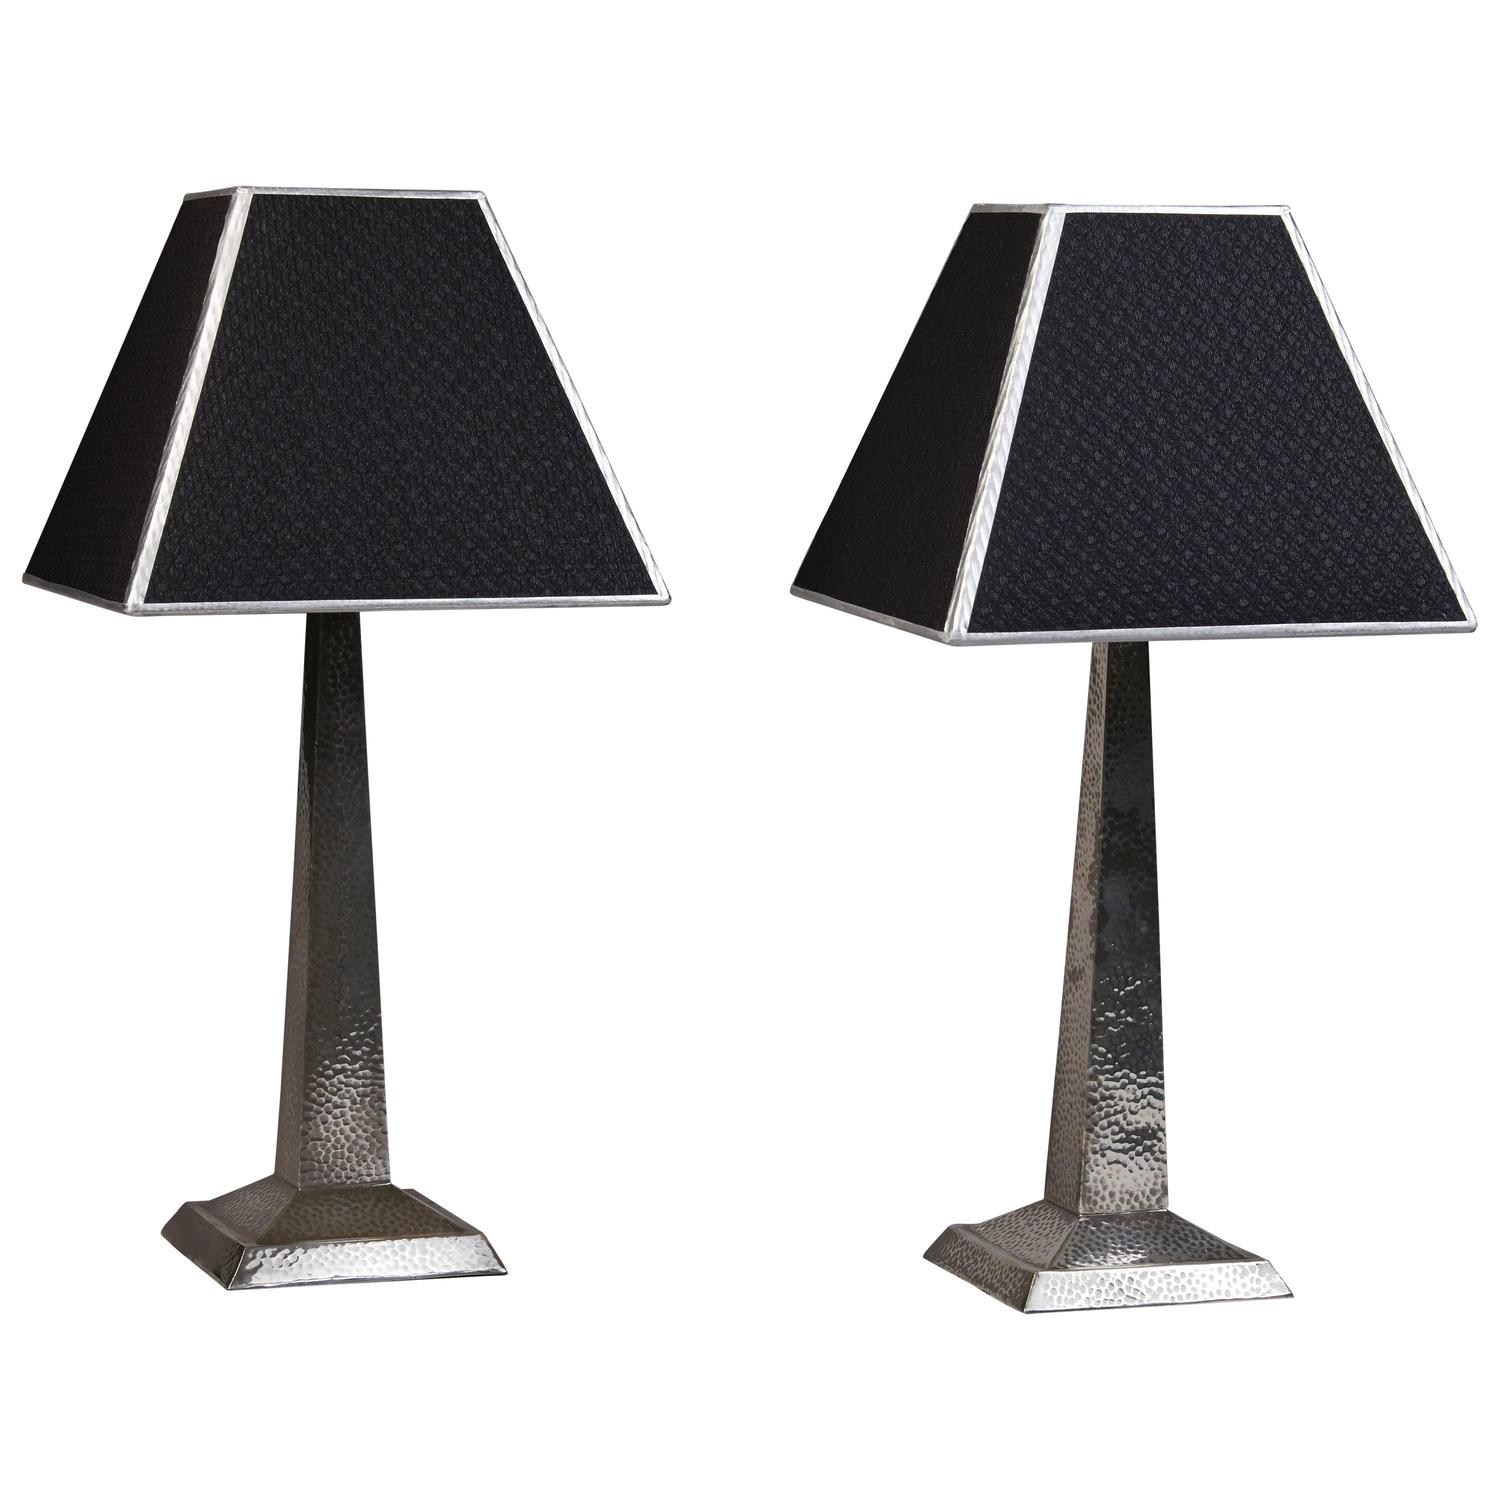 Pair Of Sheffield Silver Art Deco Bedside Lamps At 1stdibs